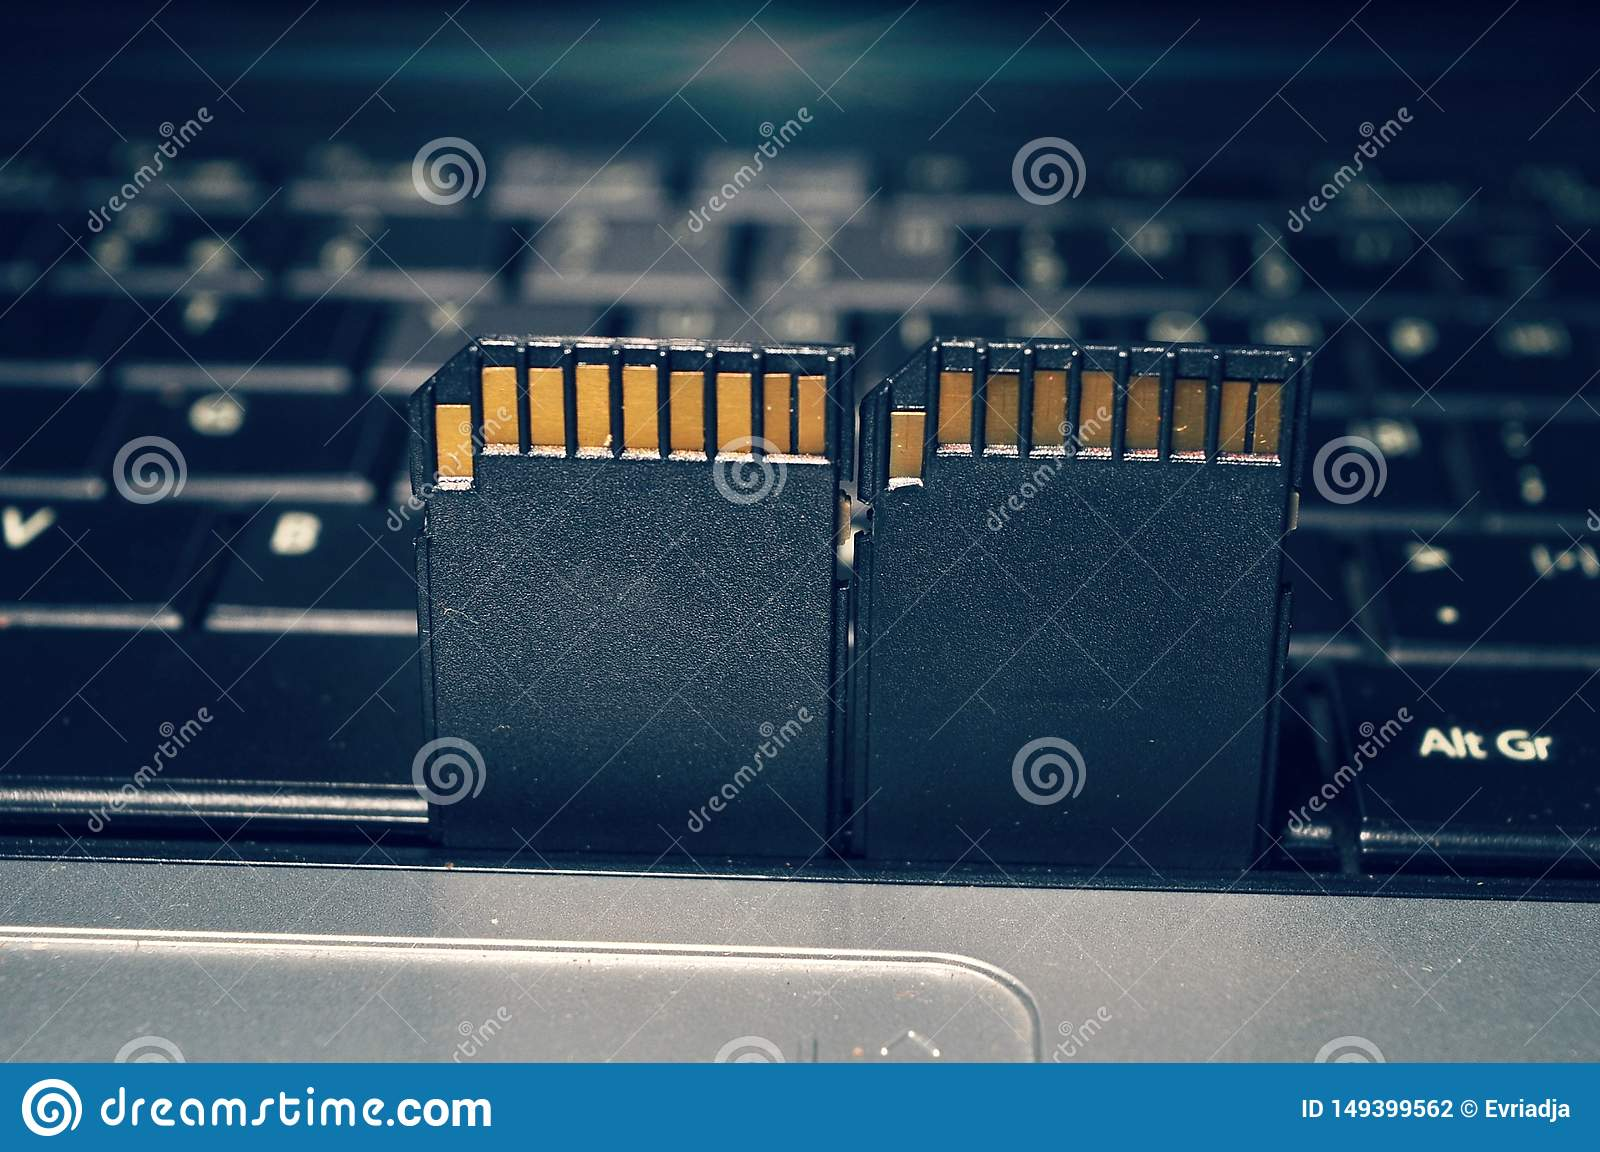 SD card isolated on keyboard laptop